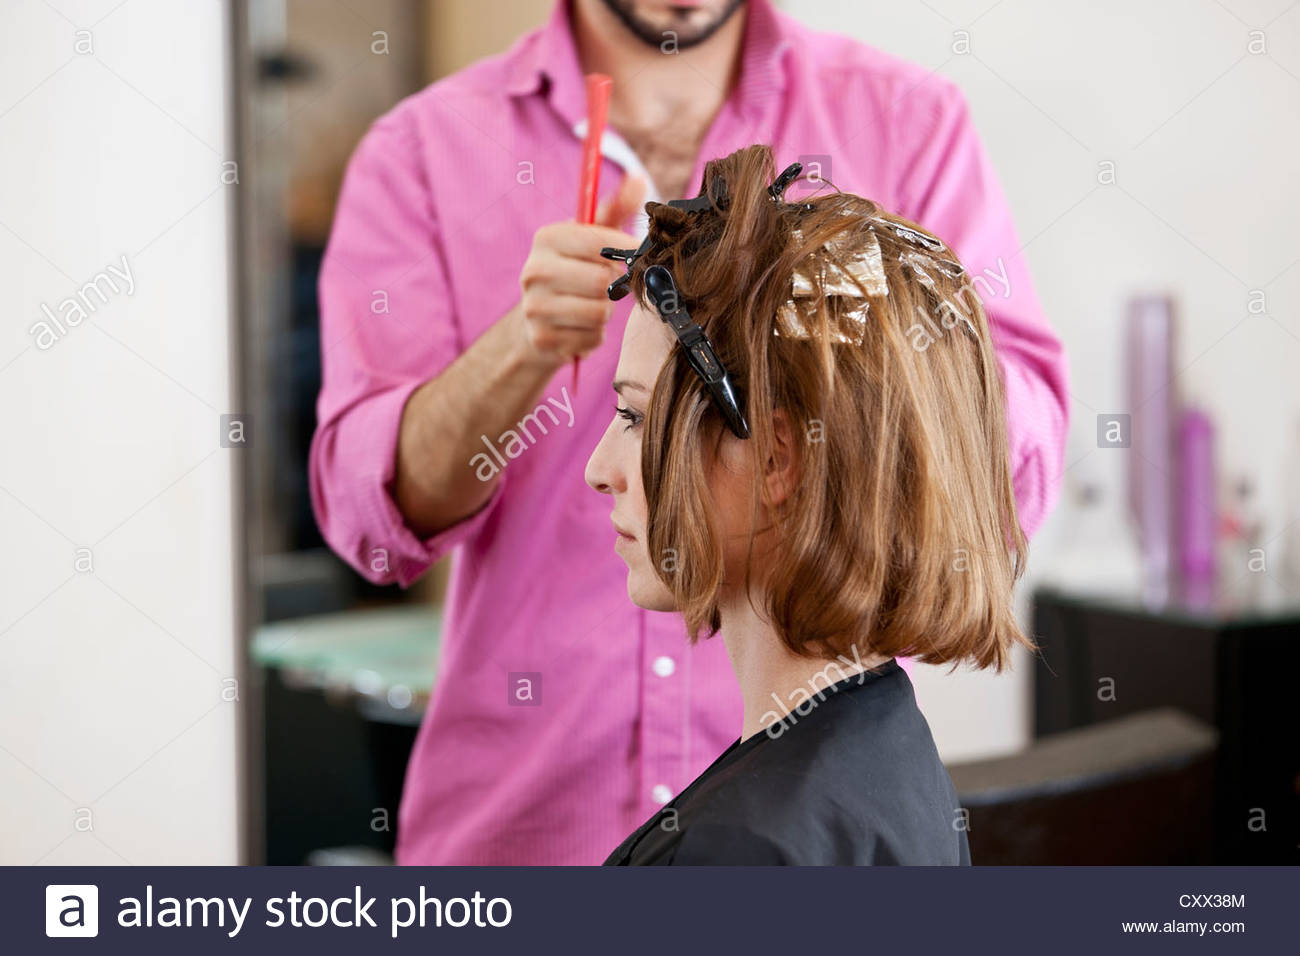 A hairdresser putting foils in a female clients hair - Stock Image